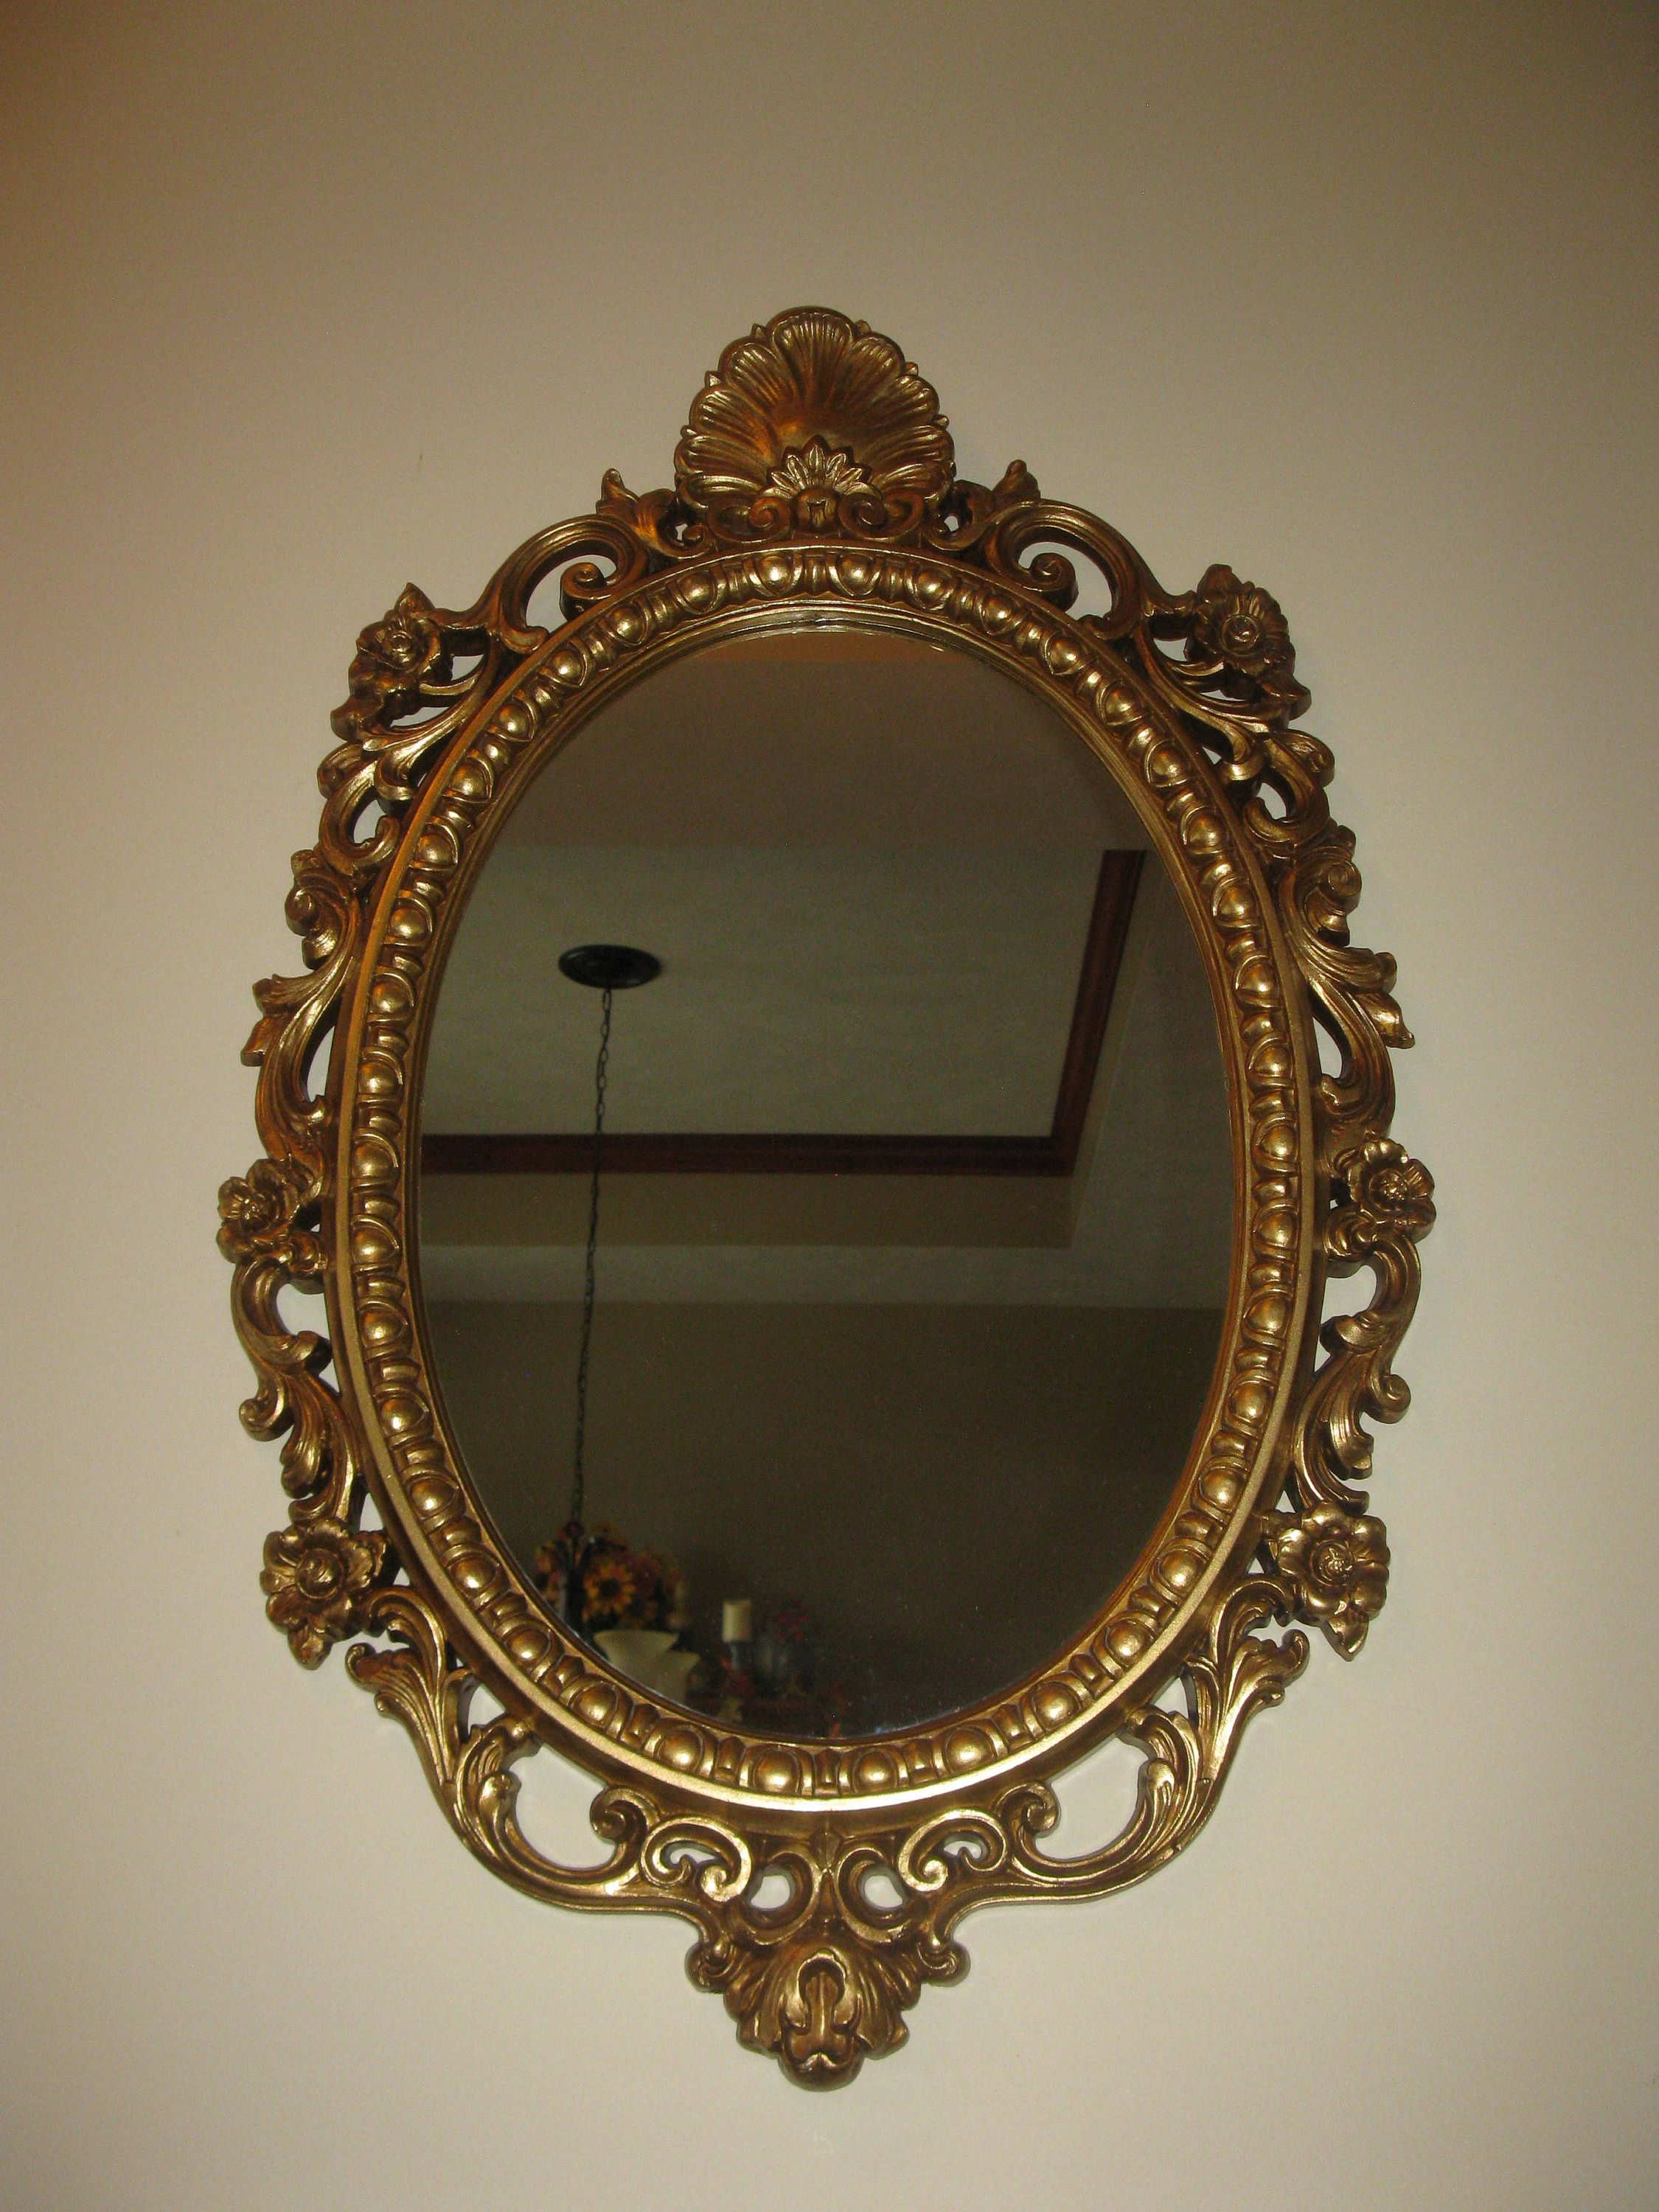 Recent Large Plastic Wall Mirrors Intended For Large Ornate Wall Mirror Oval Shape Plastic Framed (View 6 of 20)